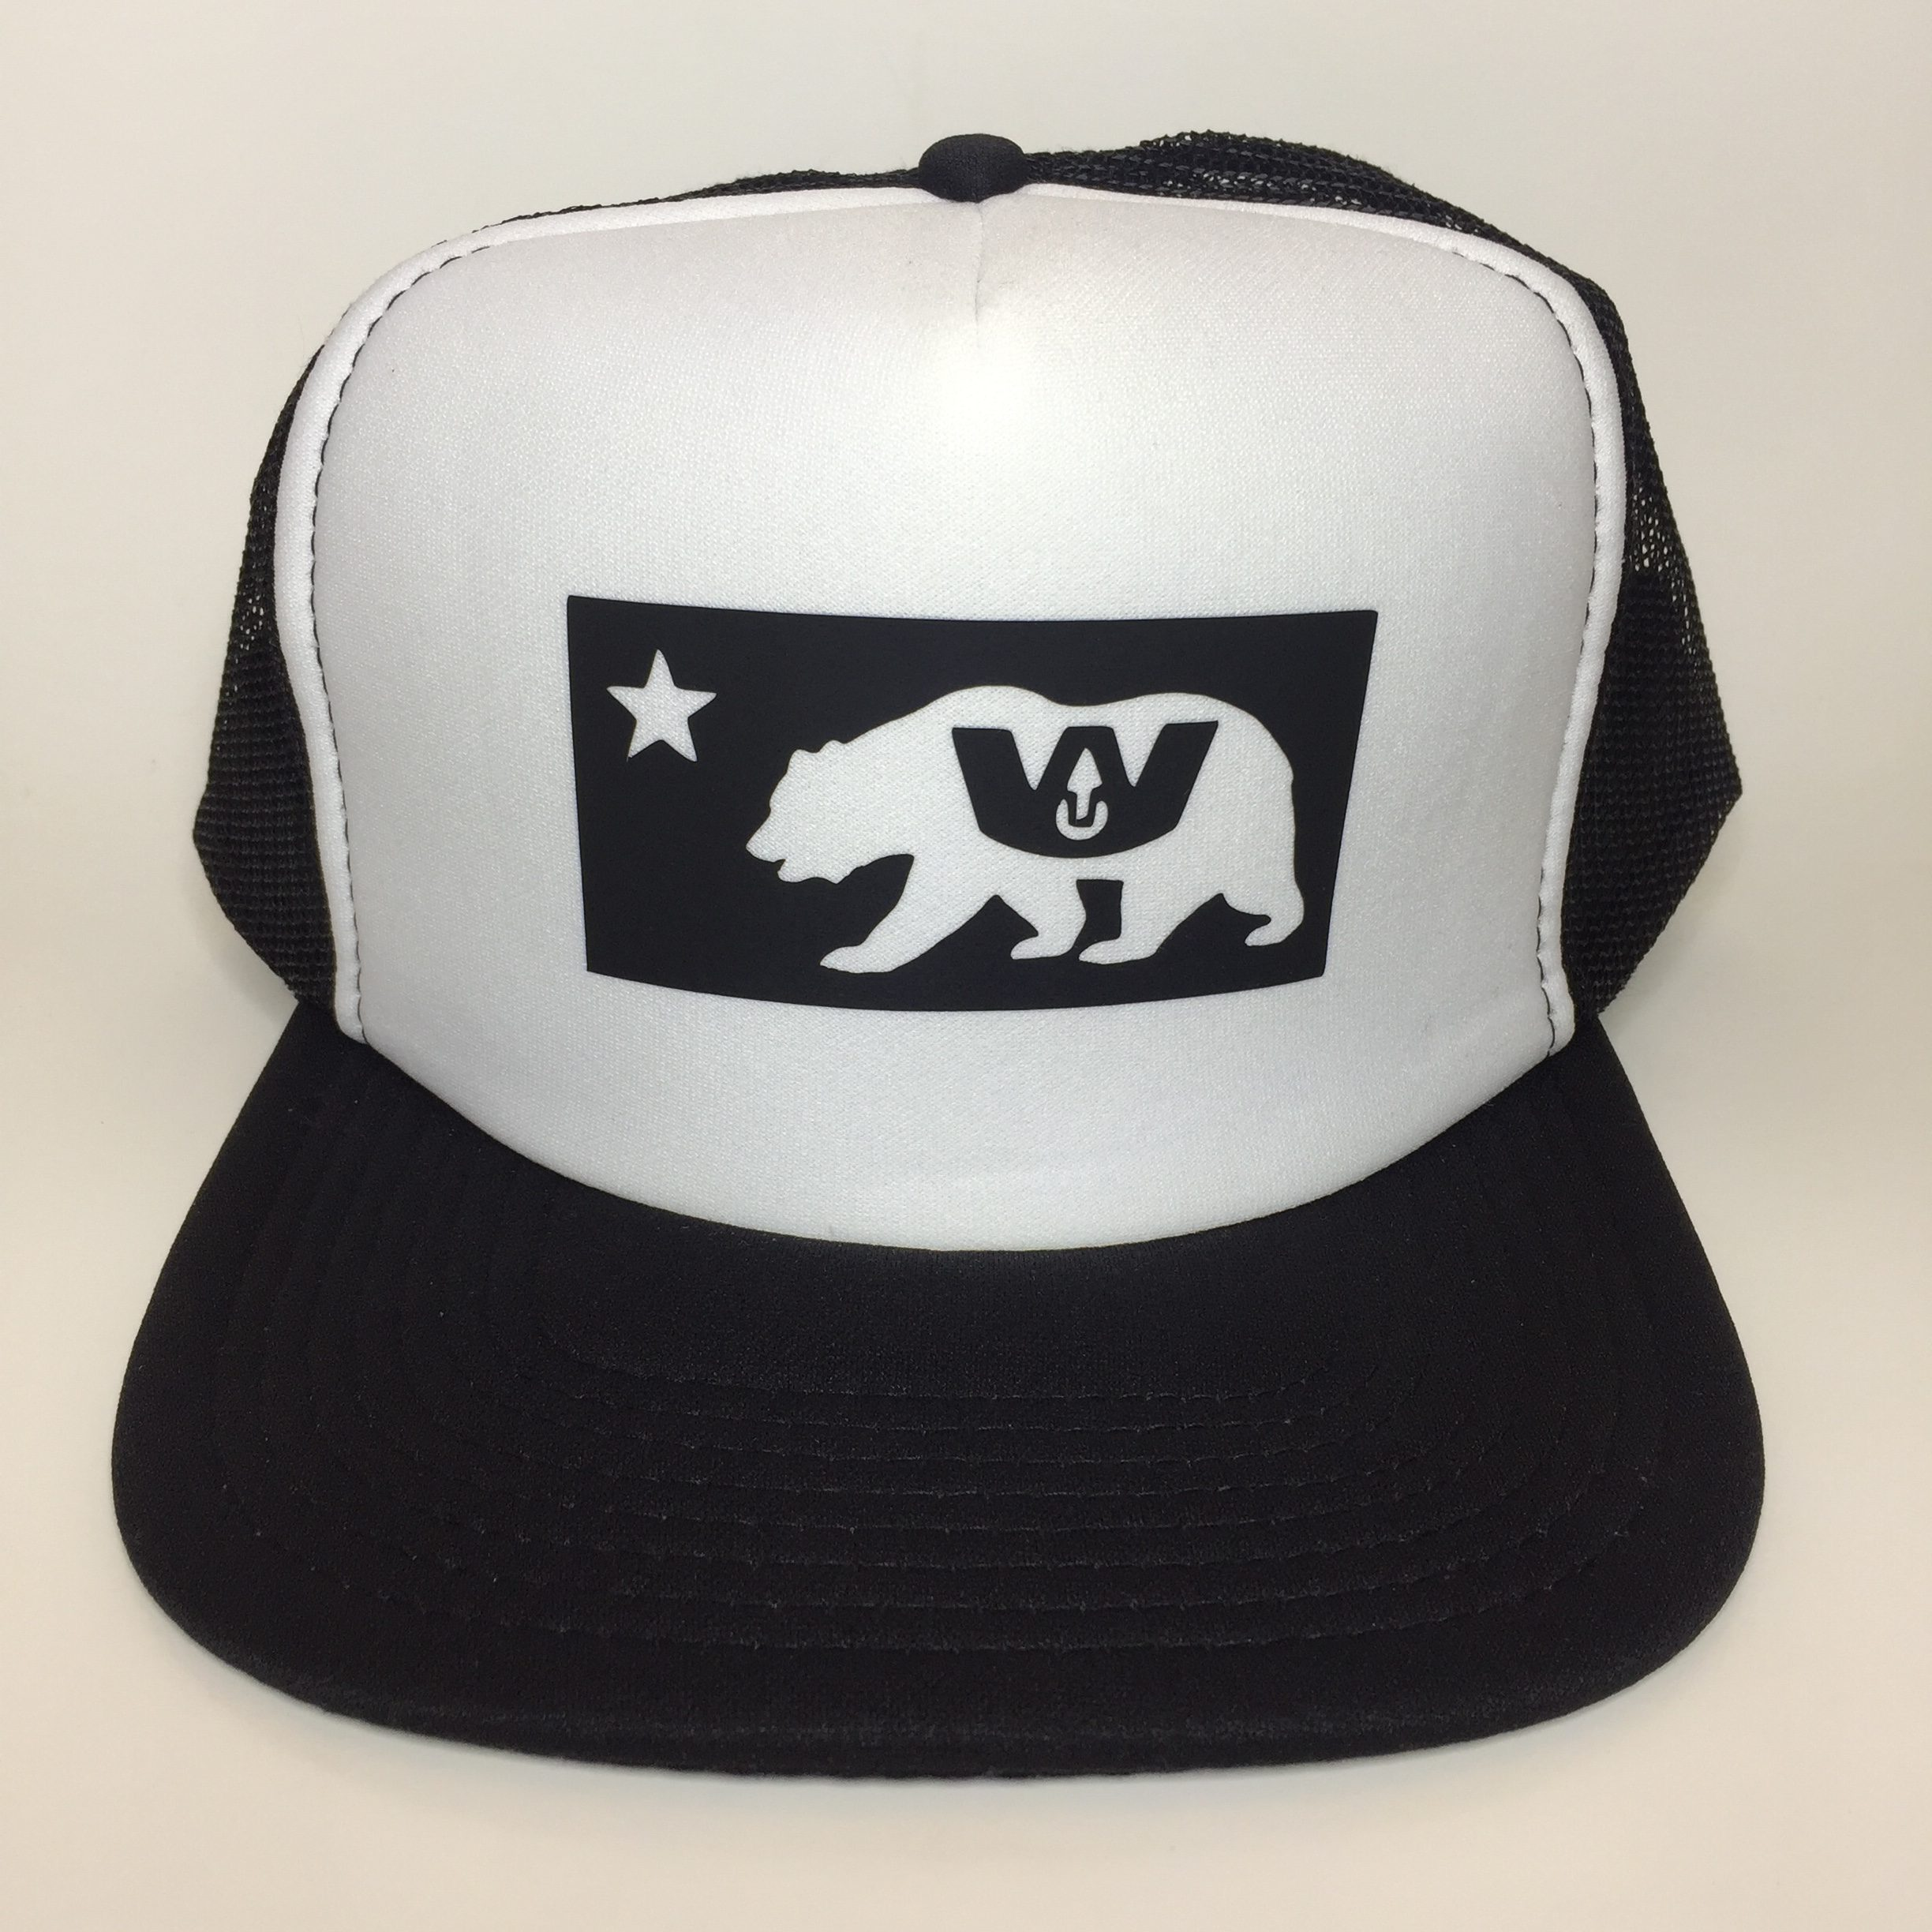 Wax Union W Cali Bear Trucker Hat Black and White Front View